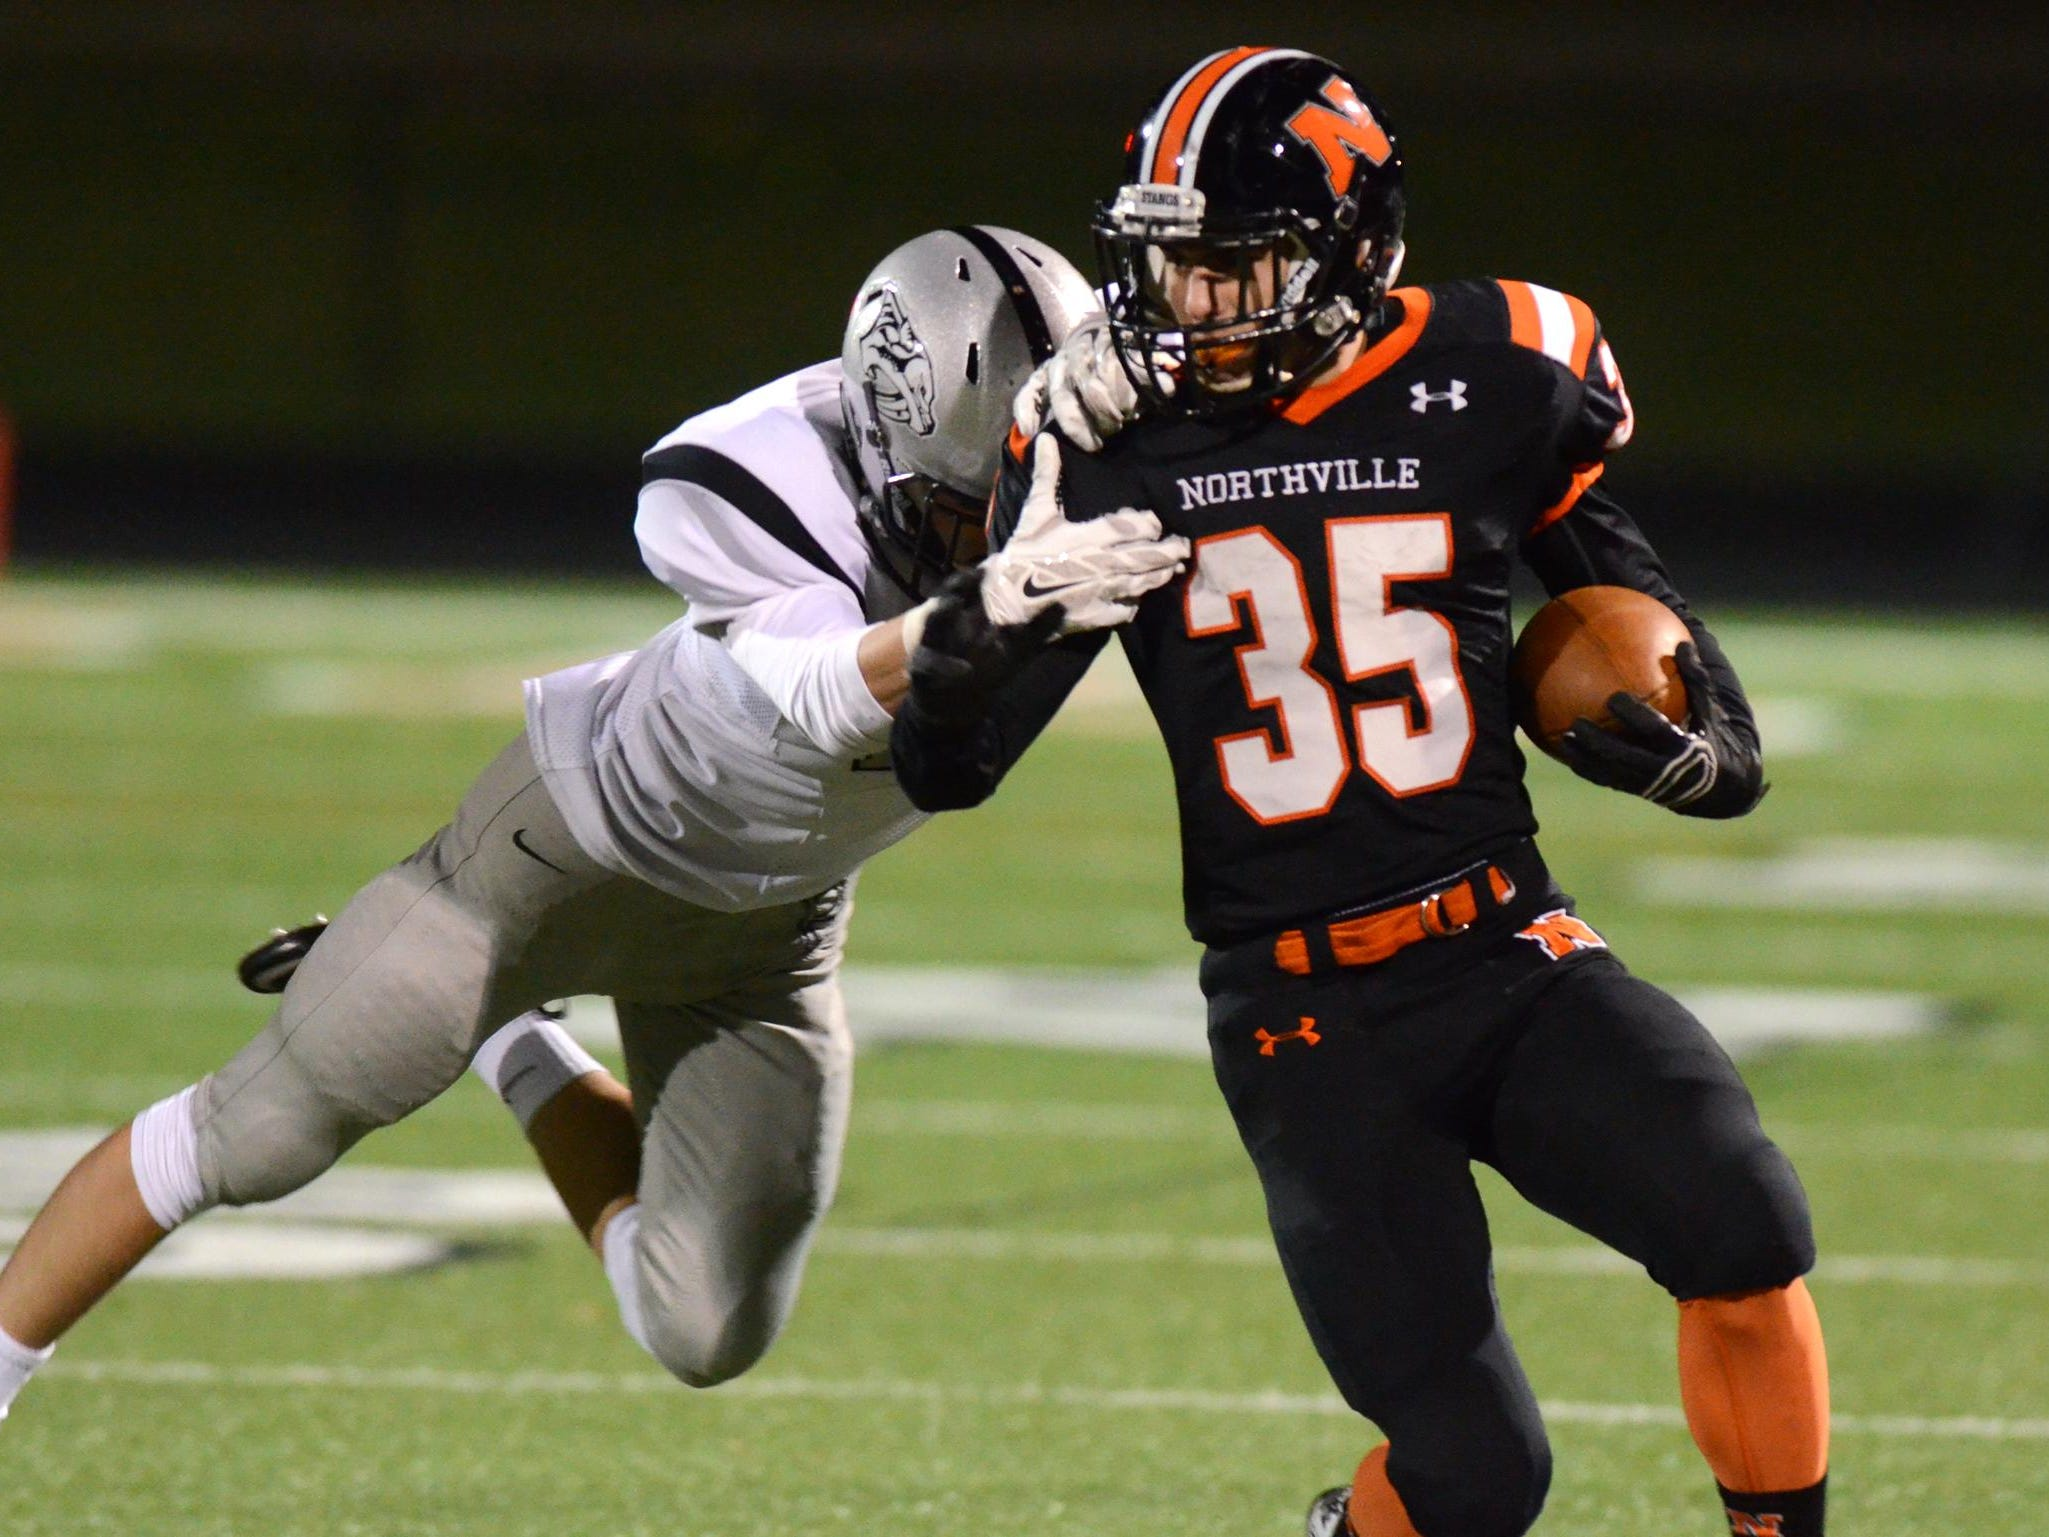 Plymouth's Joey Ahearn (left) closes in on Northville's Adam Ghabra.